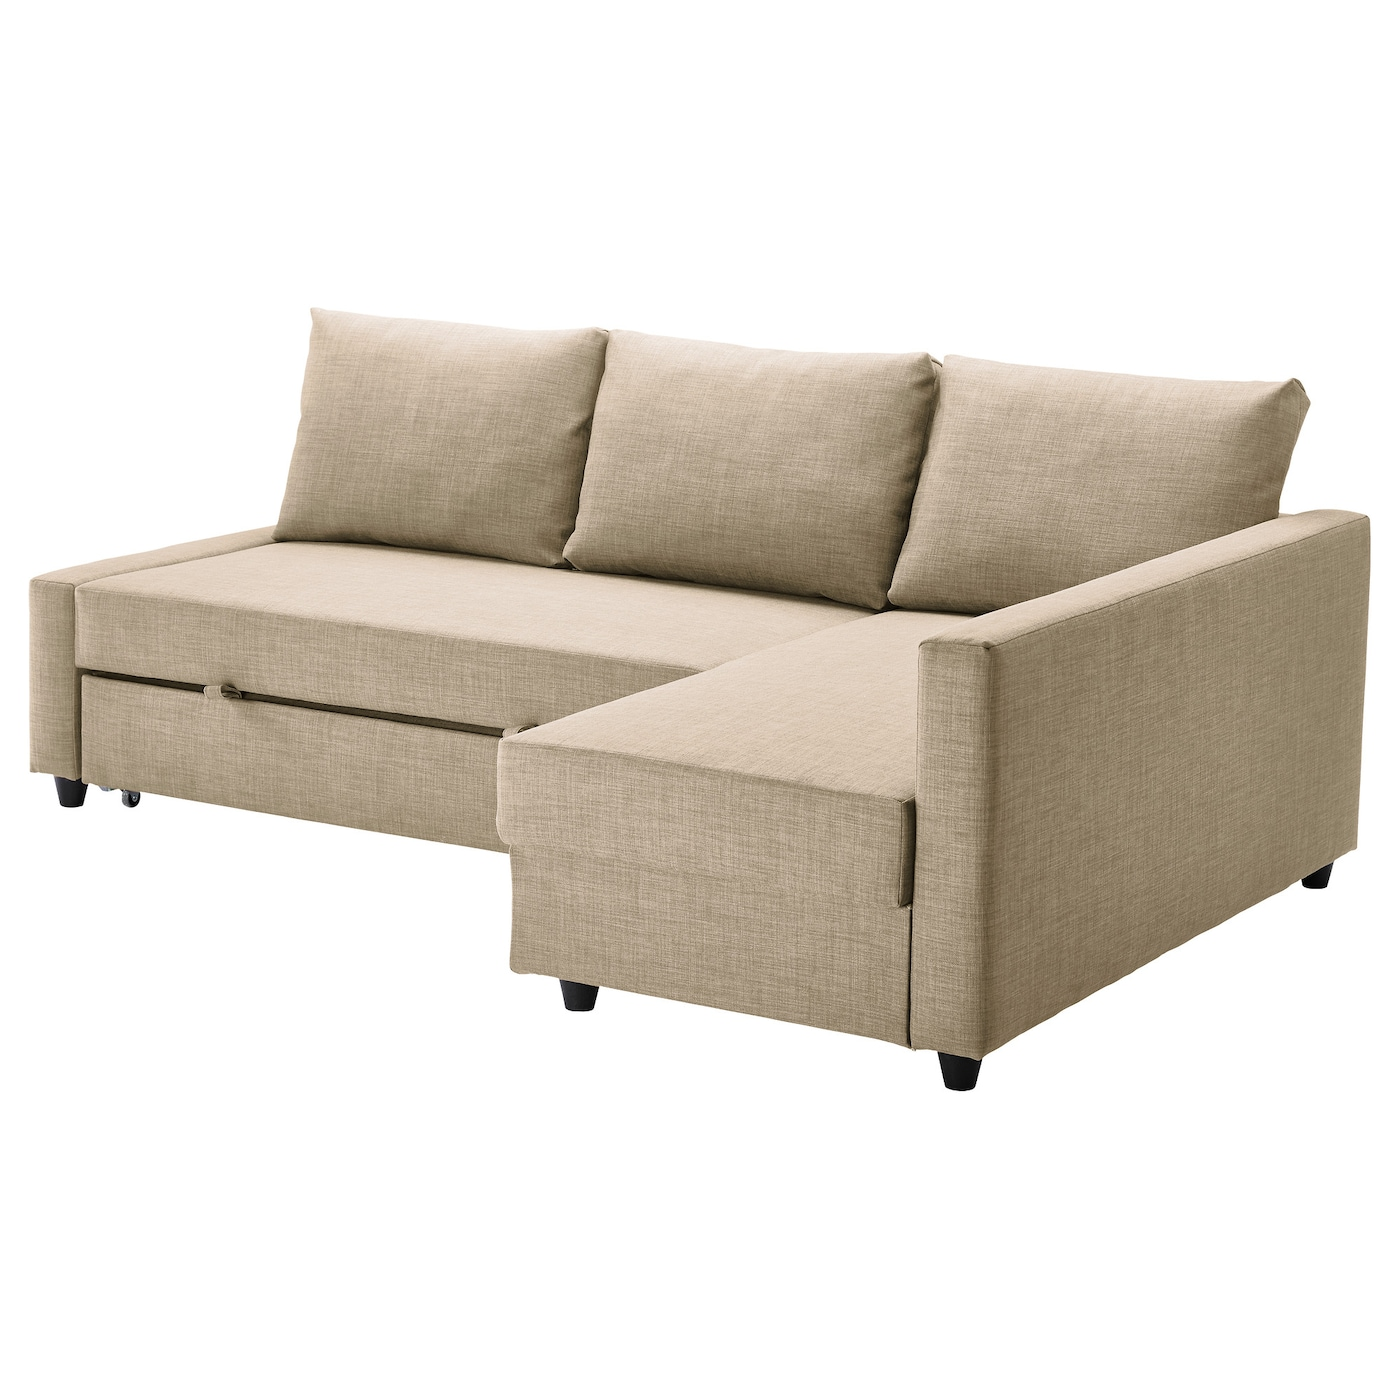 Friheten Corner Sofa Bed With Storage Skiftebo Beige Ikea